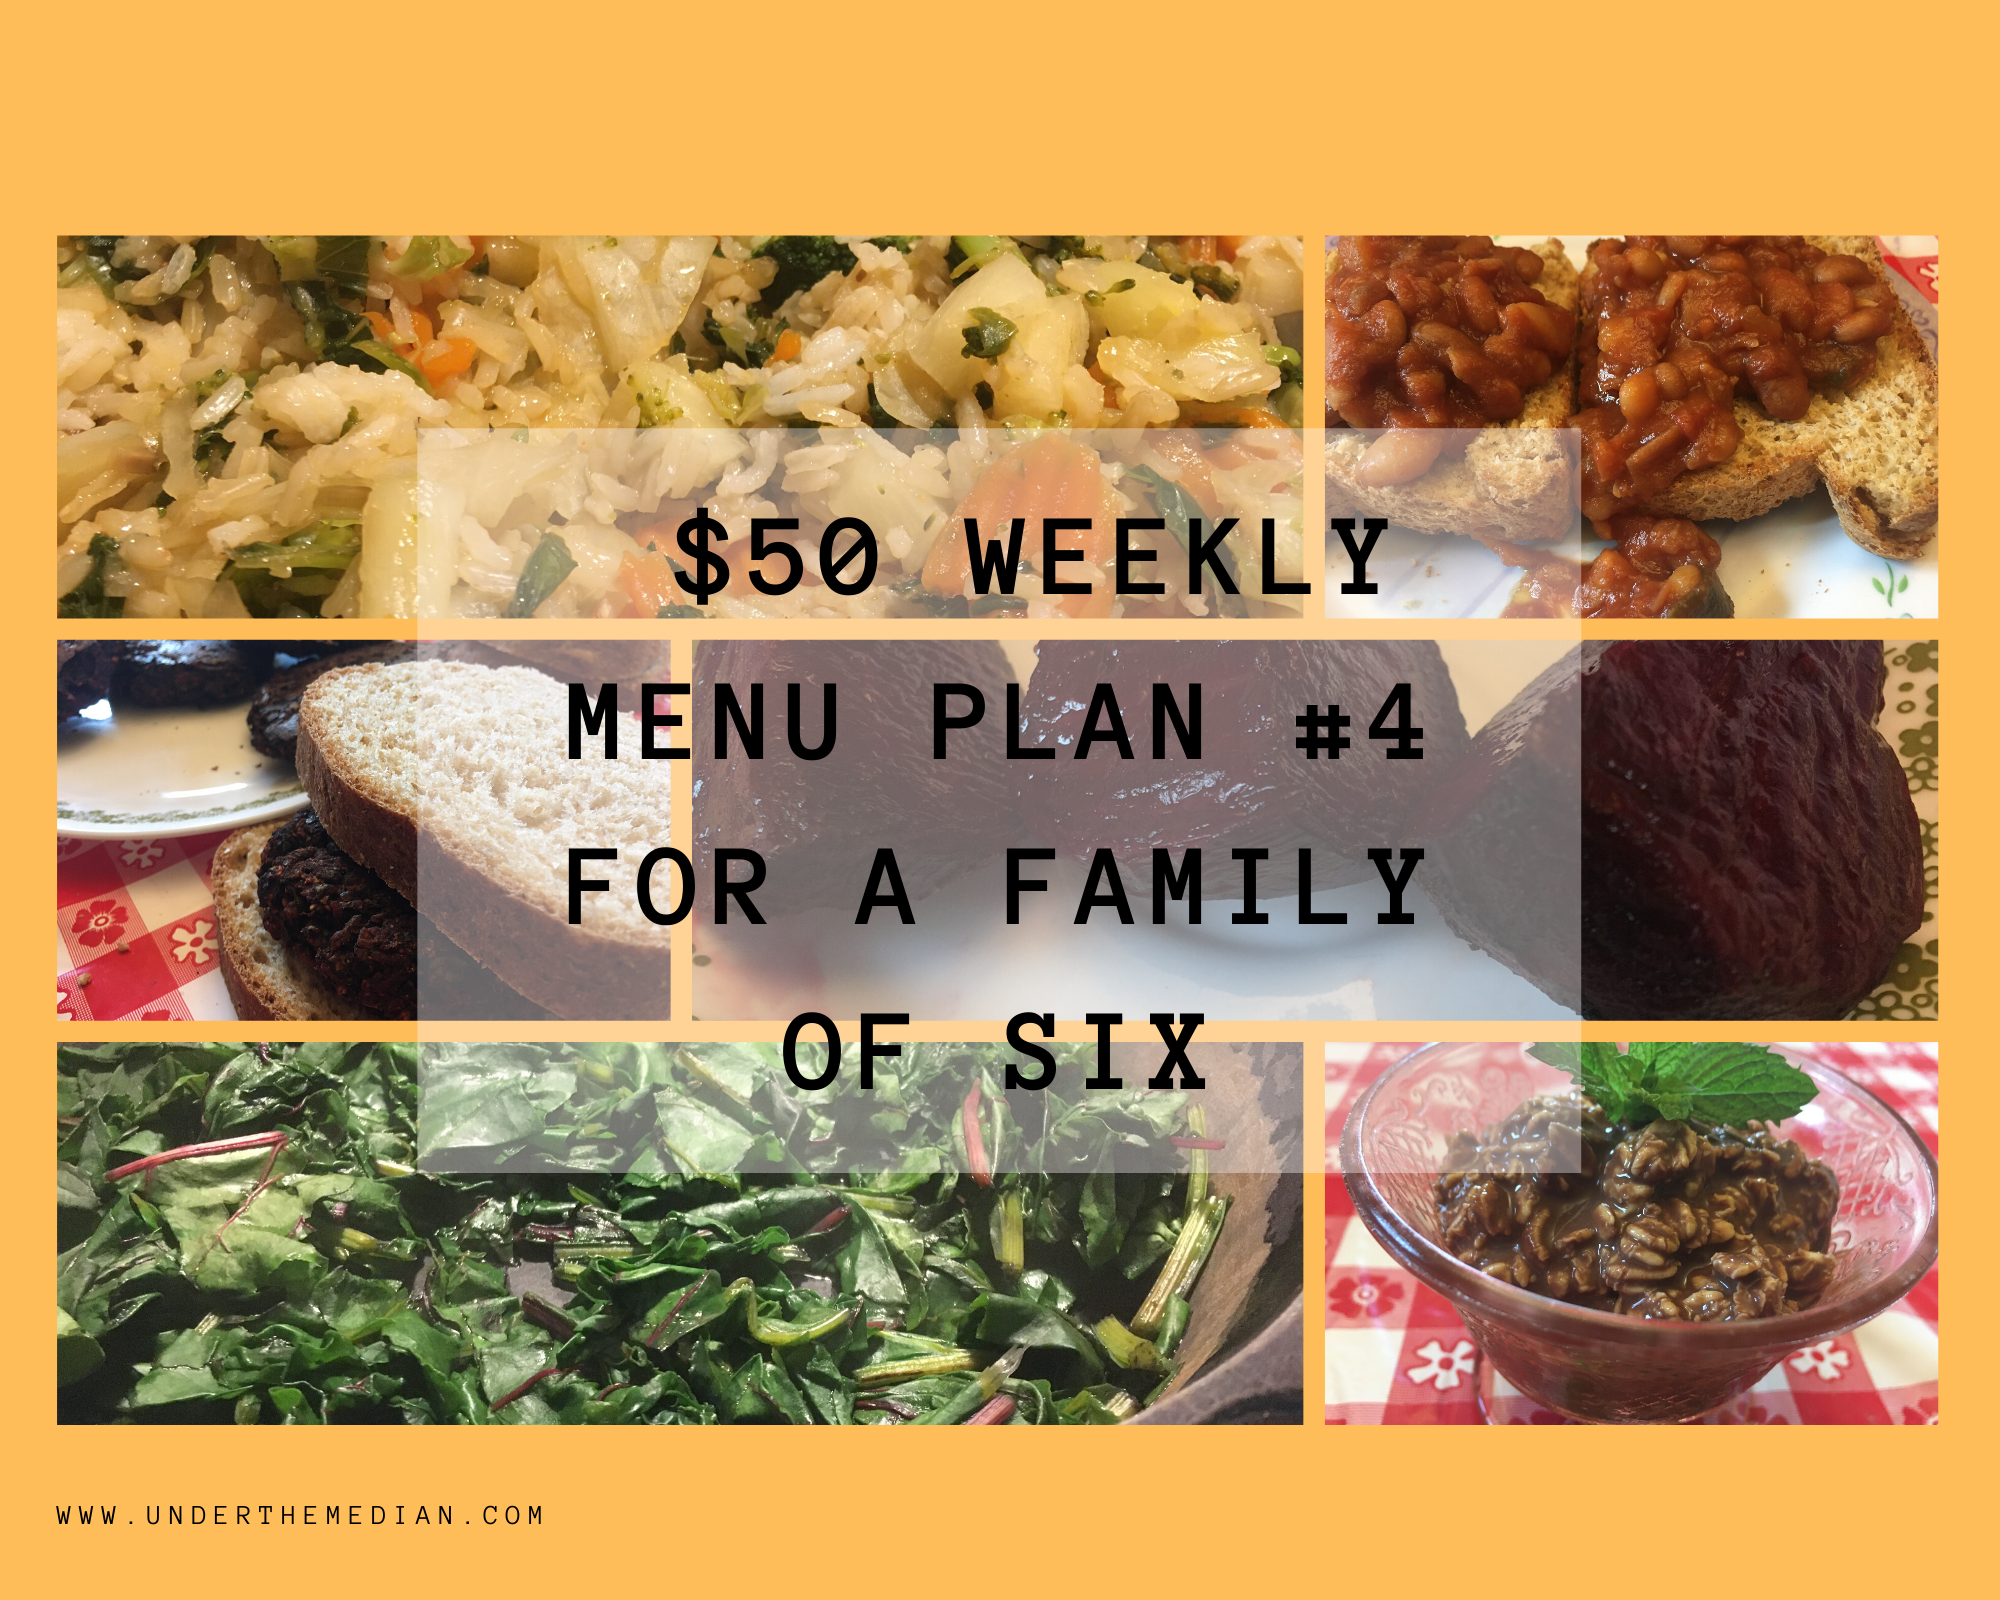 $50 Menu #4: Feeding a Family of 6 for a Week